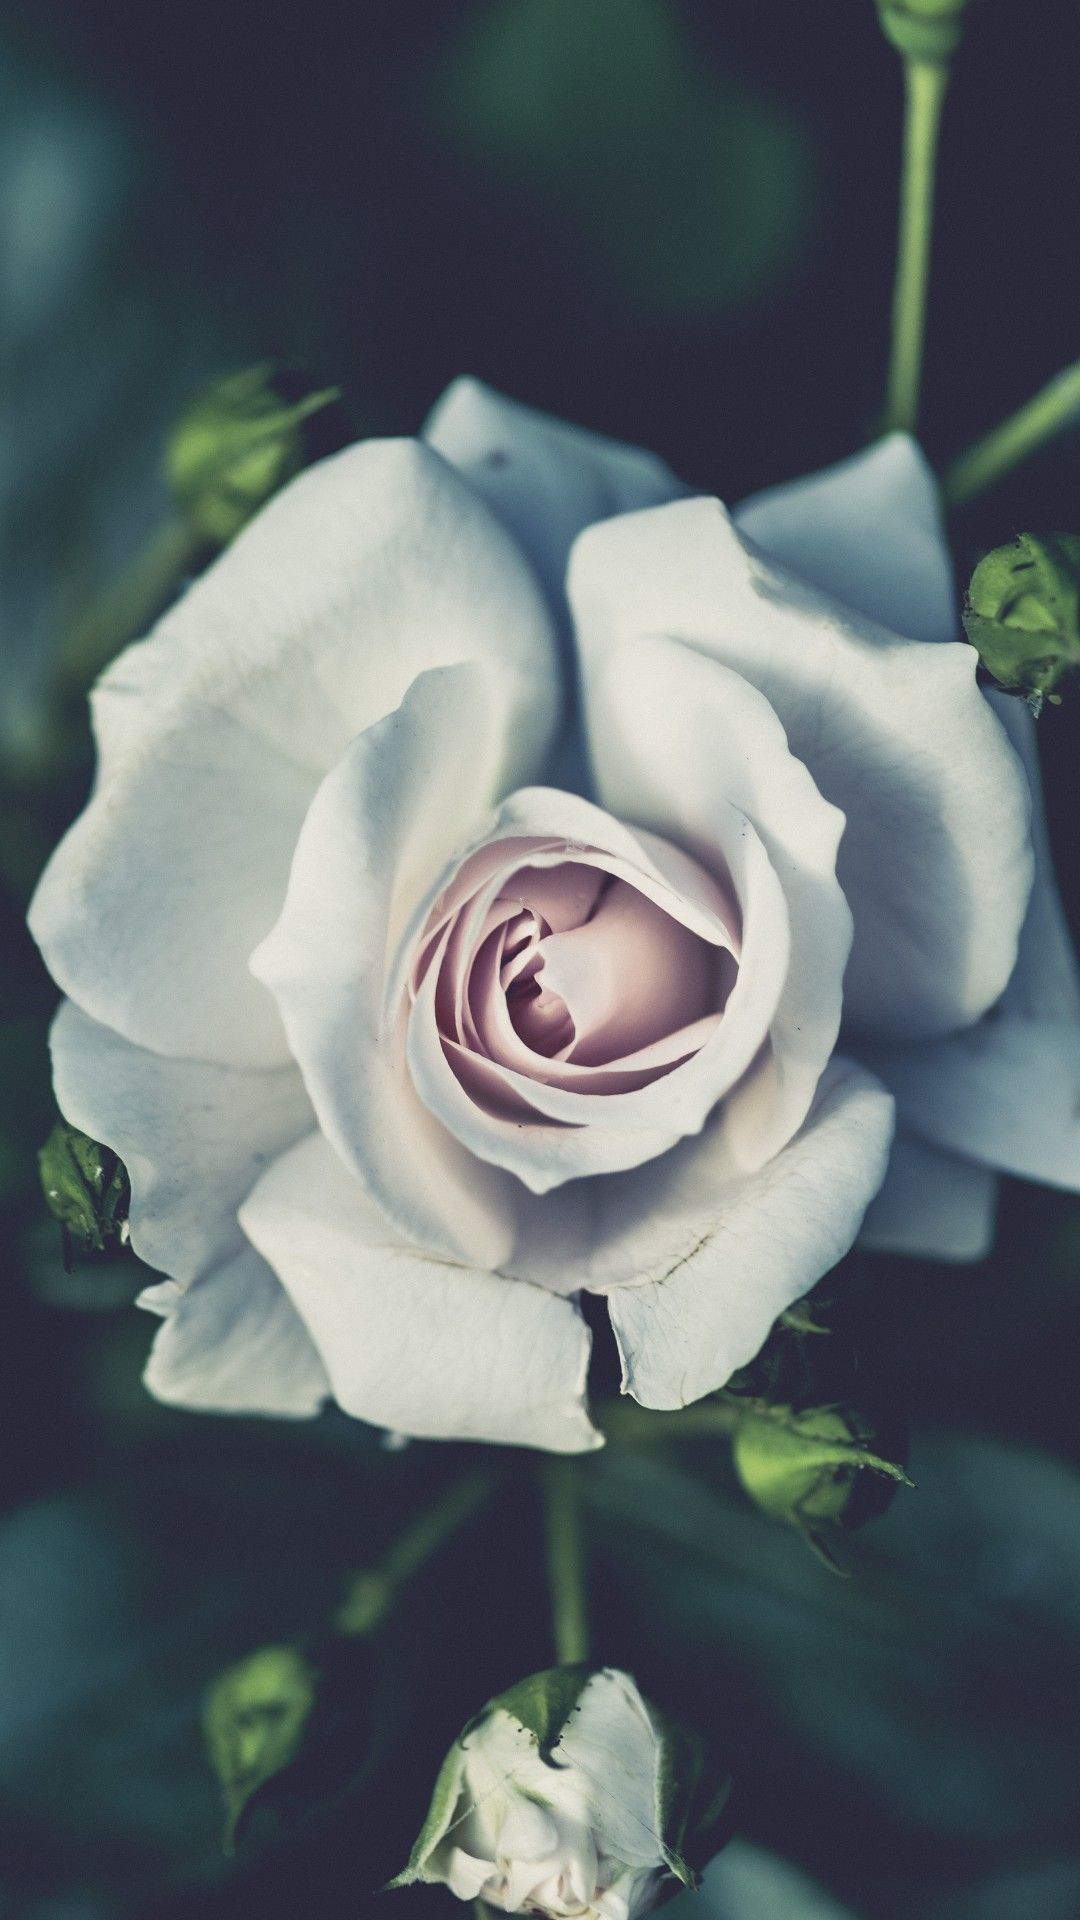 white rose wallpaper for mobile